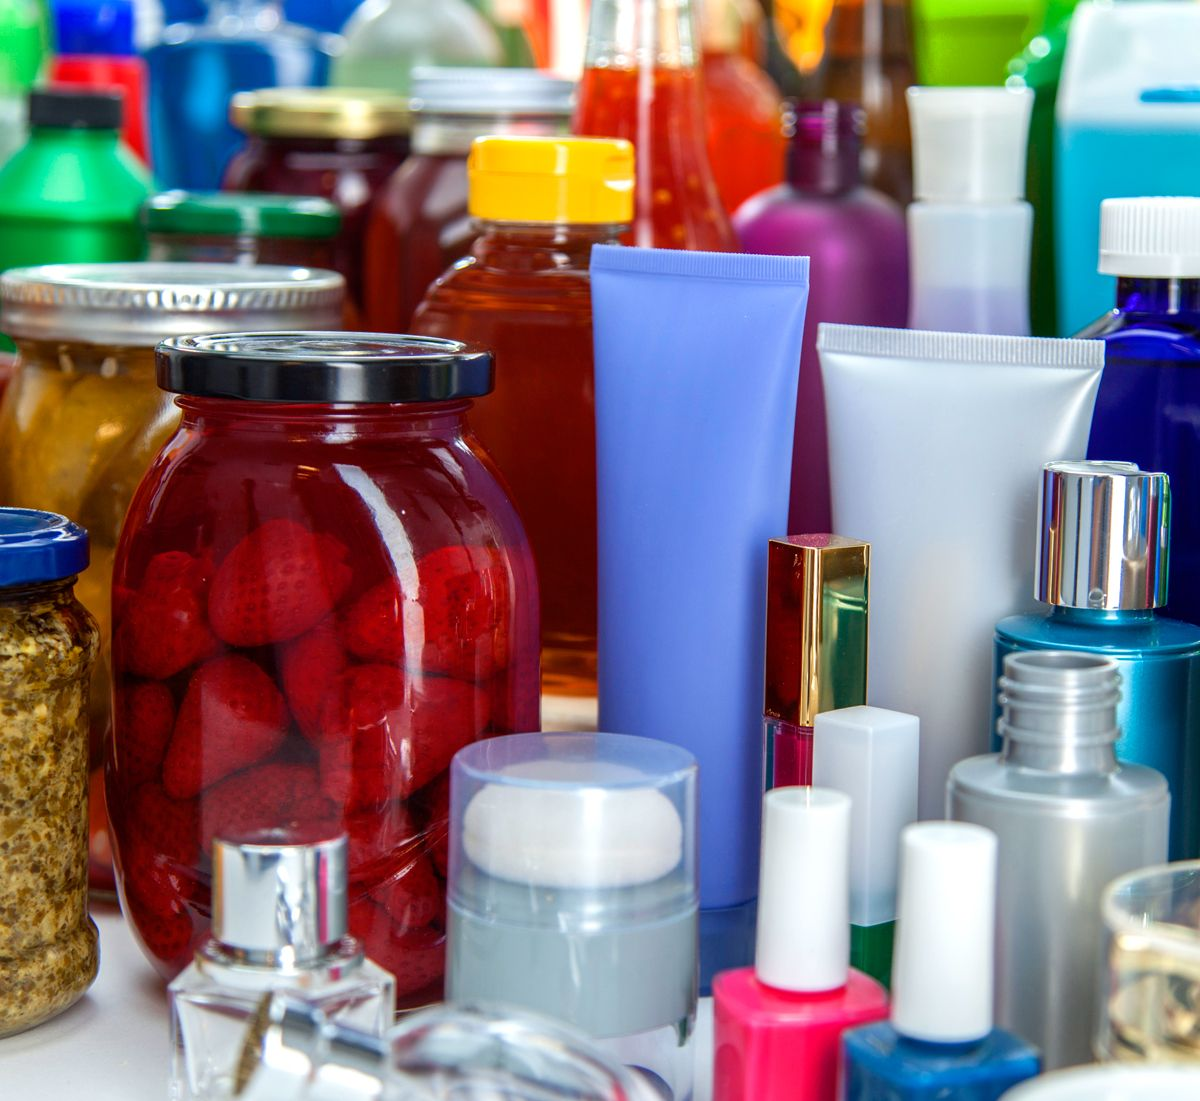 Sales Analysis for Confidential Household Product